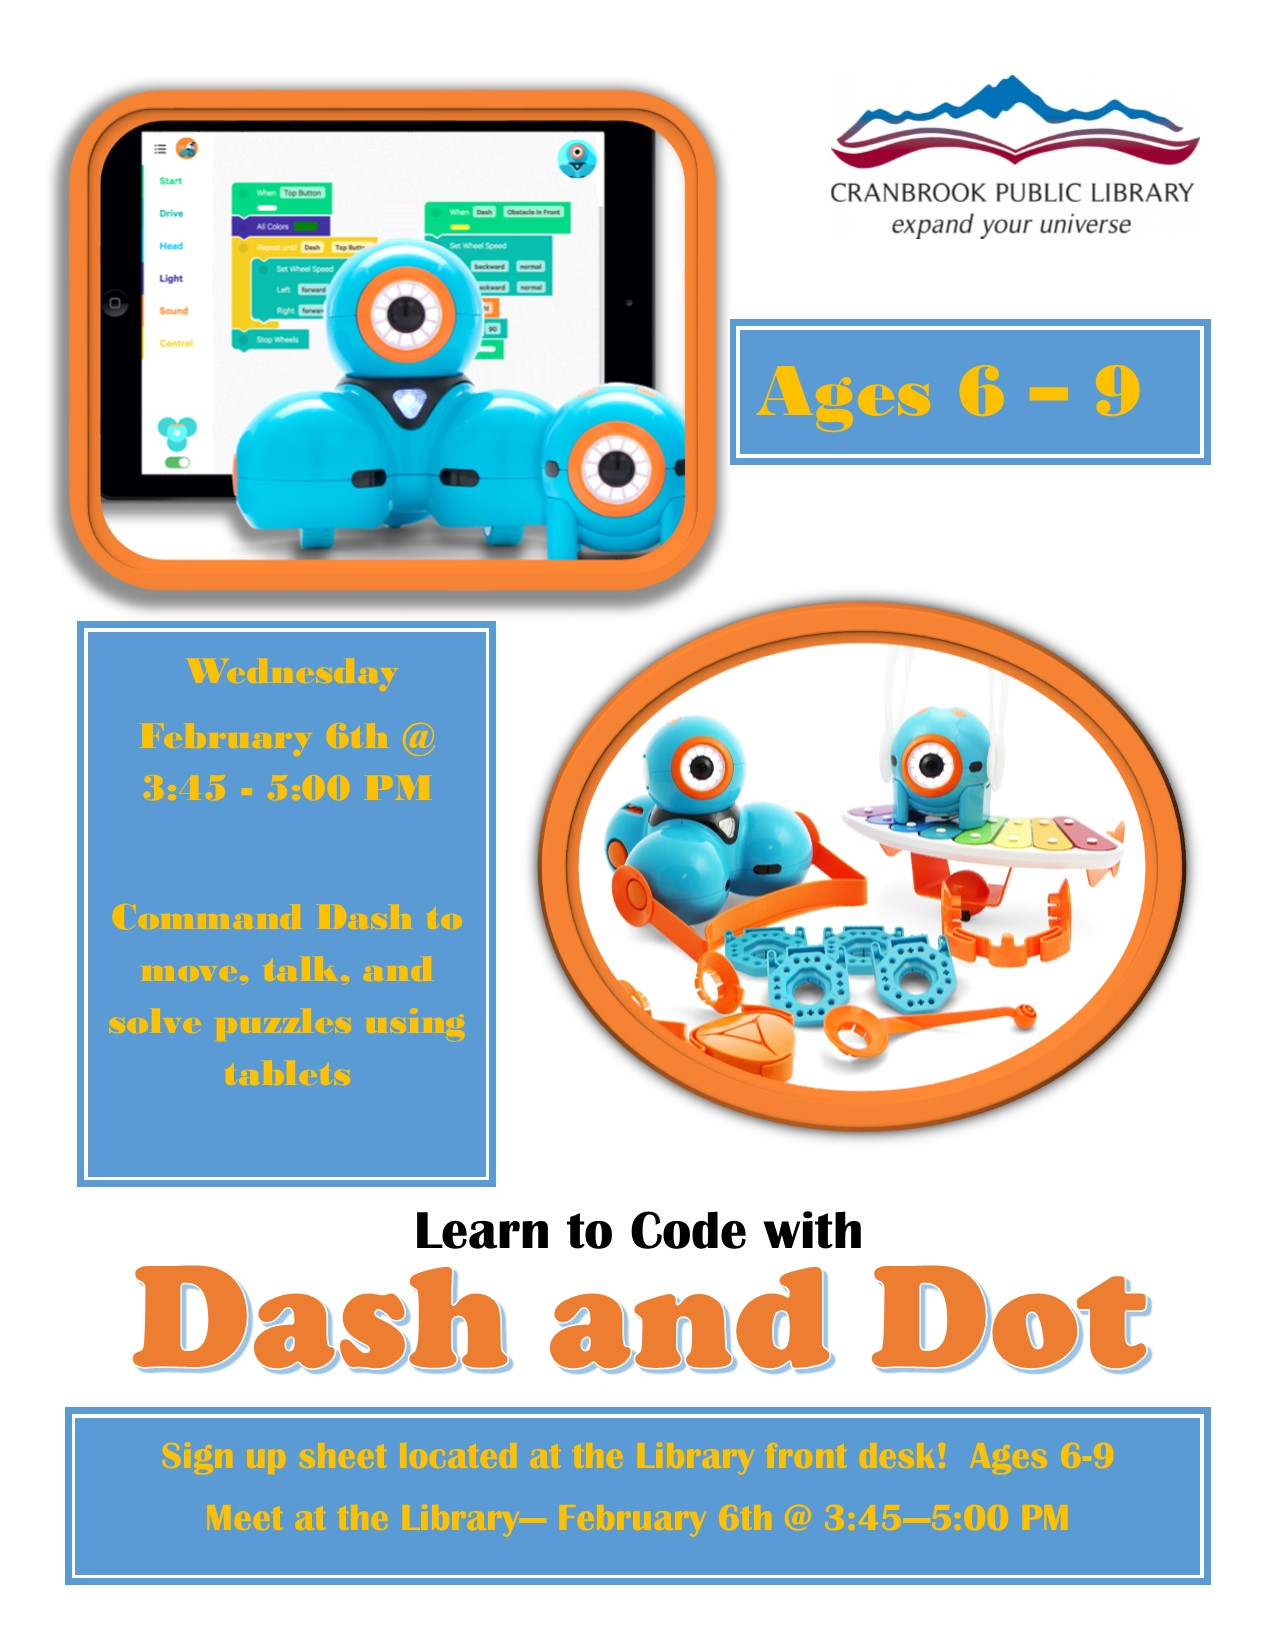 Learn to Code with Dash and Dot (Ages 6-9) @ Cranbrook Public Library